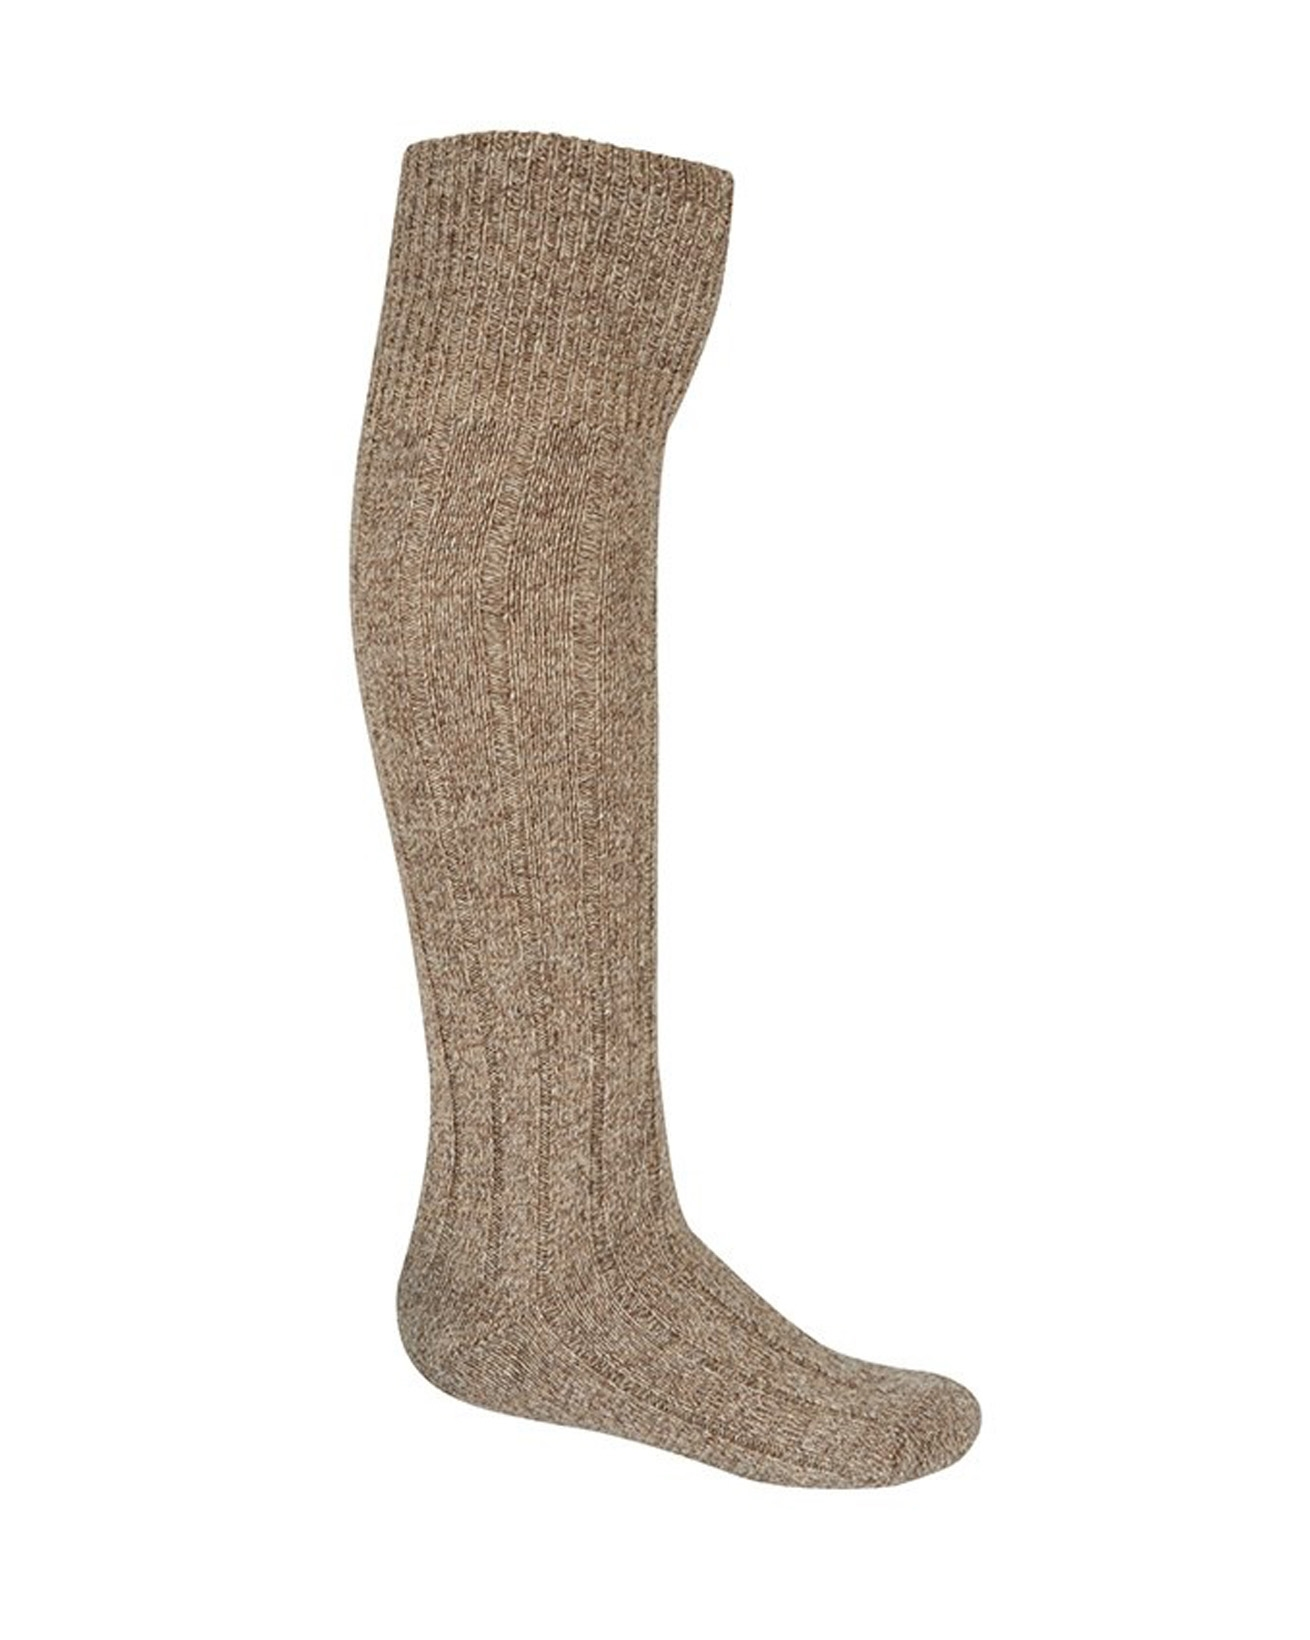 New Men's Boot Socks